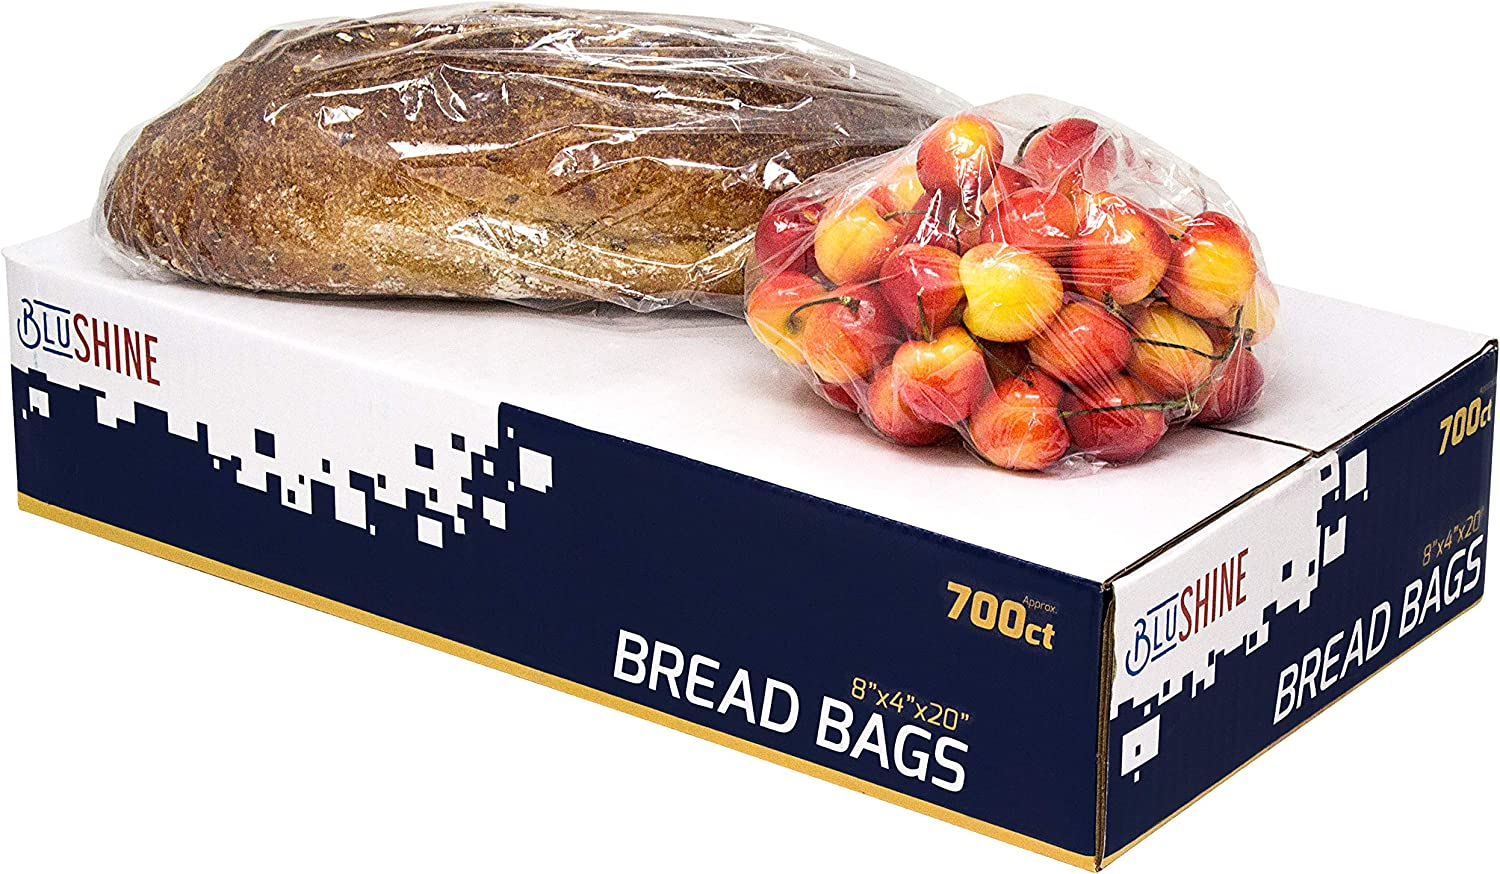 [700 Pack] Strong Clear Plastic Bread Bags – Perfect for Storing Loaves, Pastries, Baked Goods, Produce – for Home or Commercial Food Storage Solutions